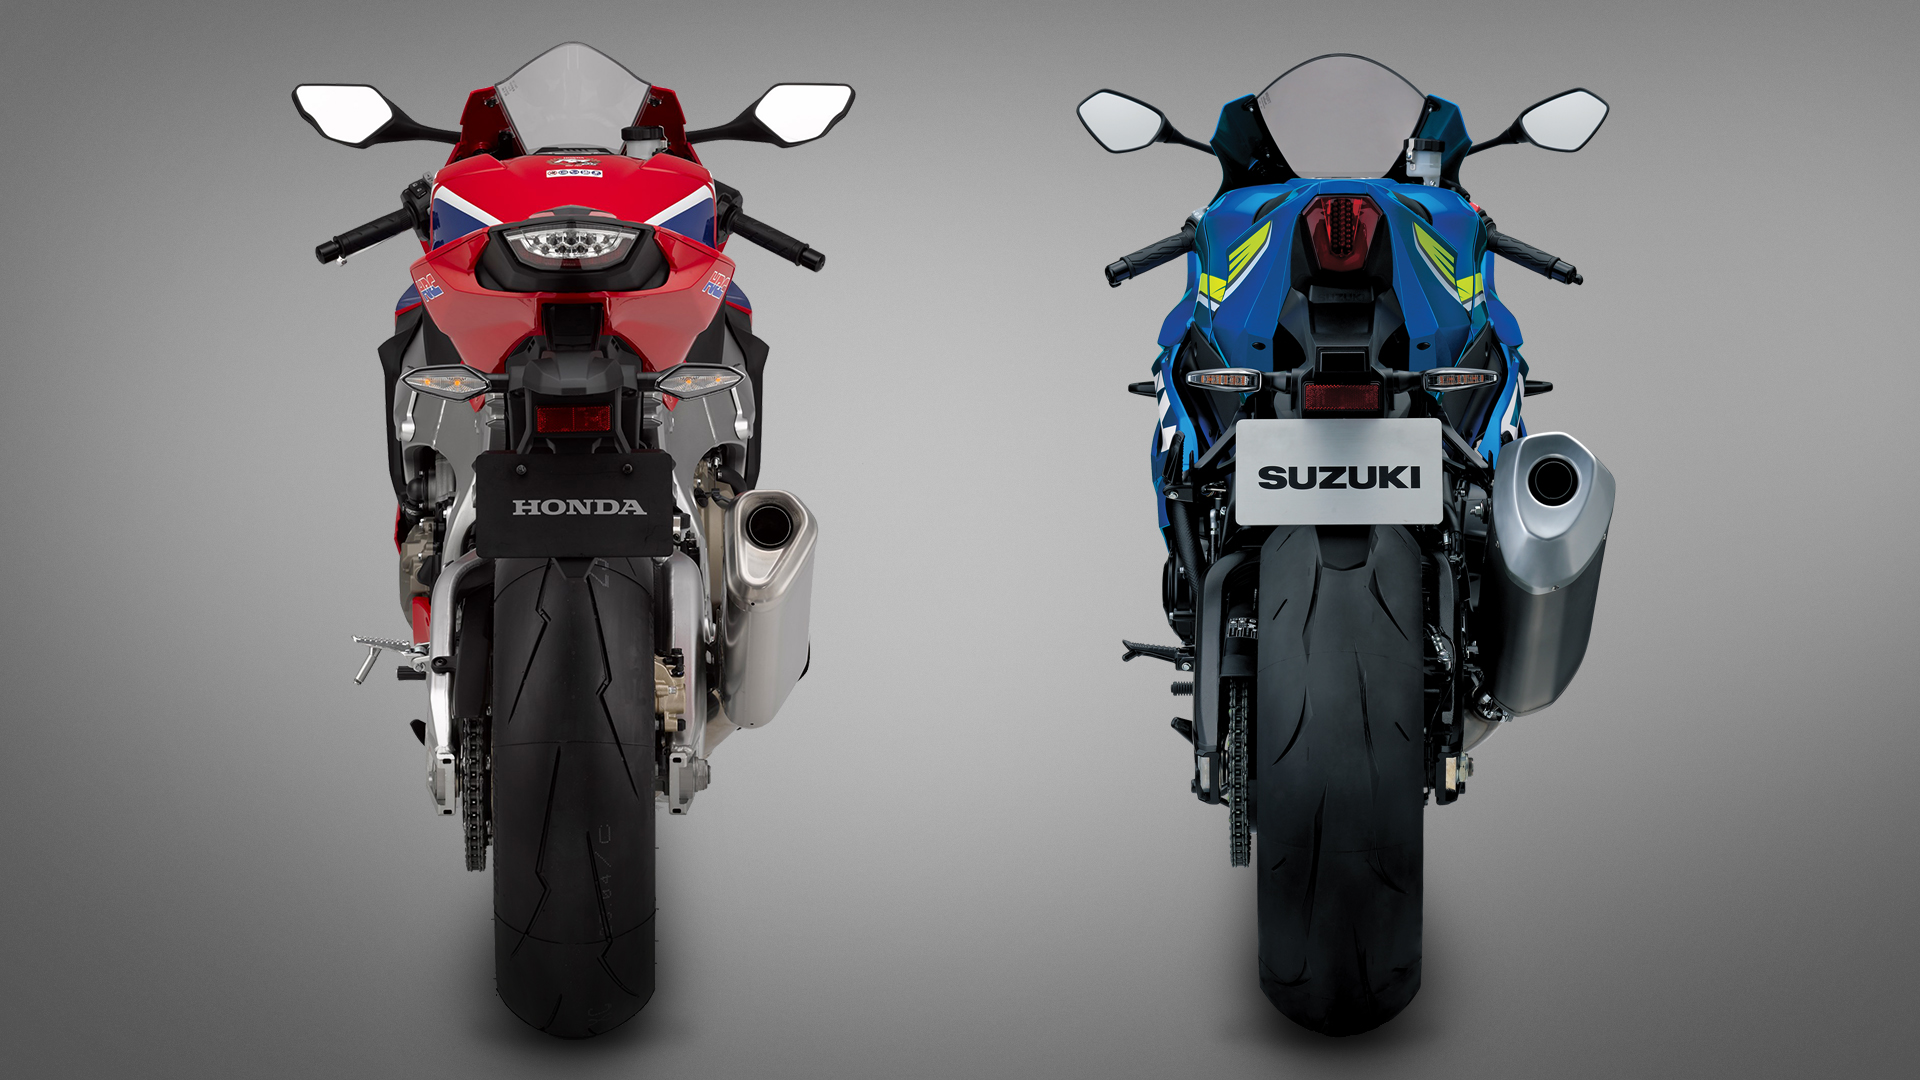 Suzuki's narrow tail section is finished off with a sleek brake light, but that exhaust is a whopper